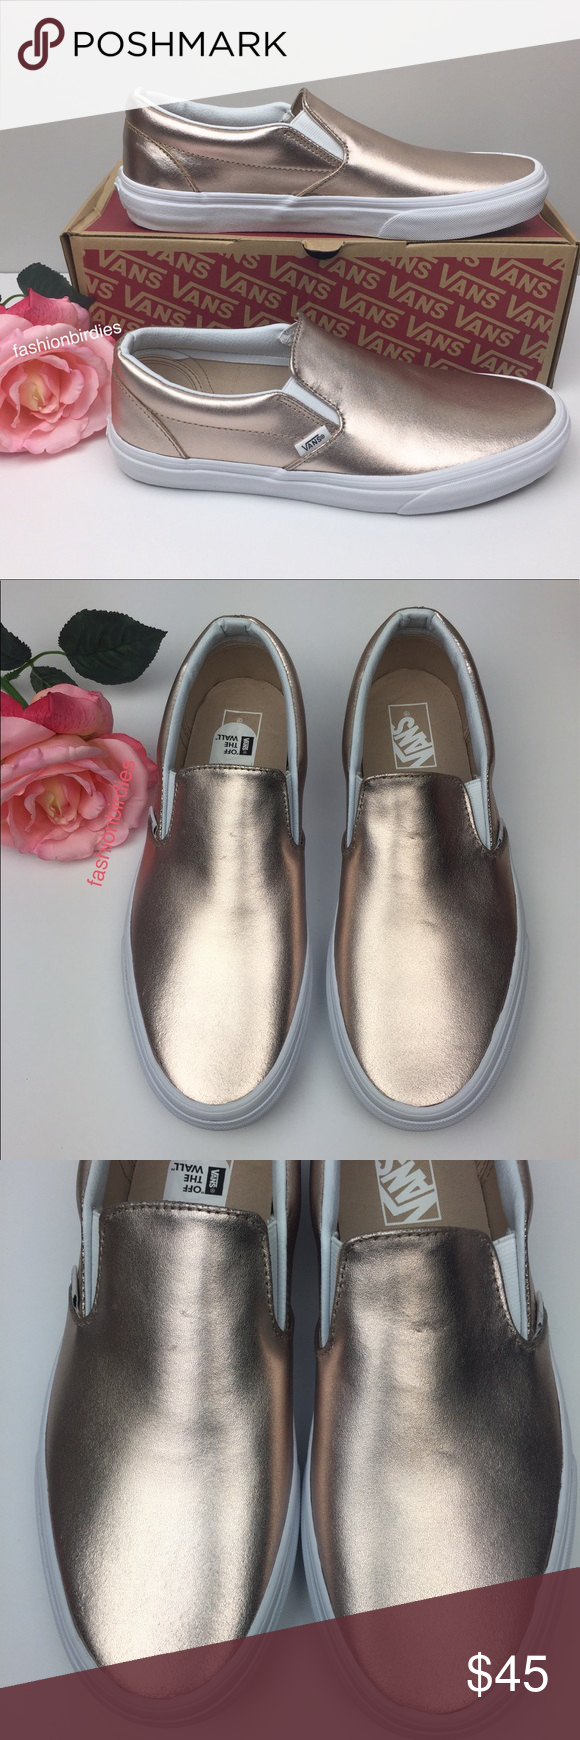 4422234ac75 Vans Classic Slip On Metallic Leather Rose Gold Brand new with box and  sticker Vans Classic